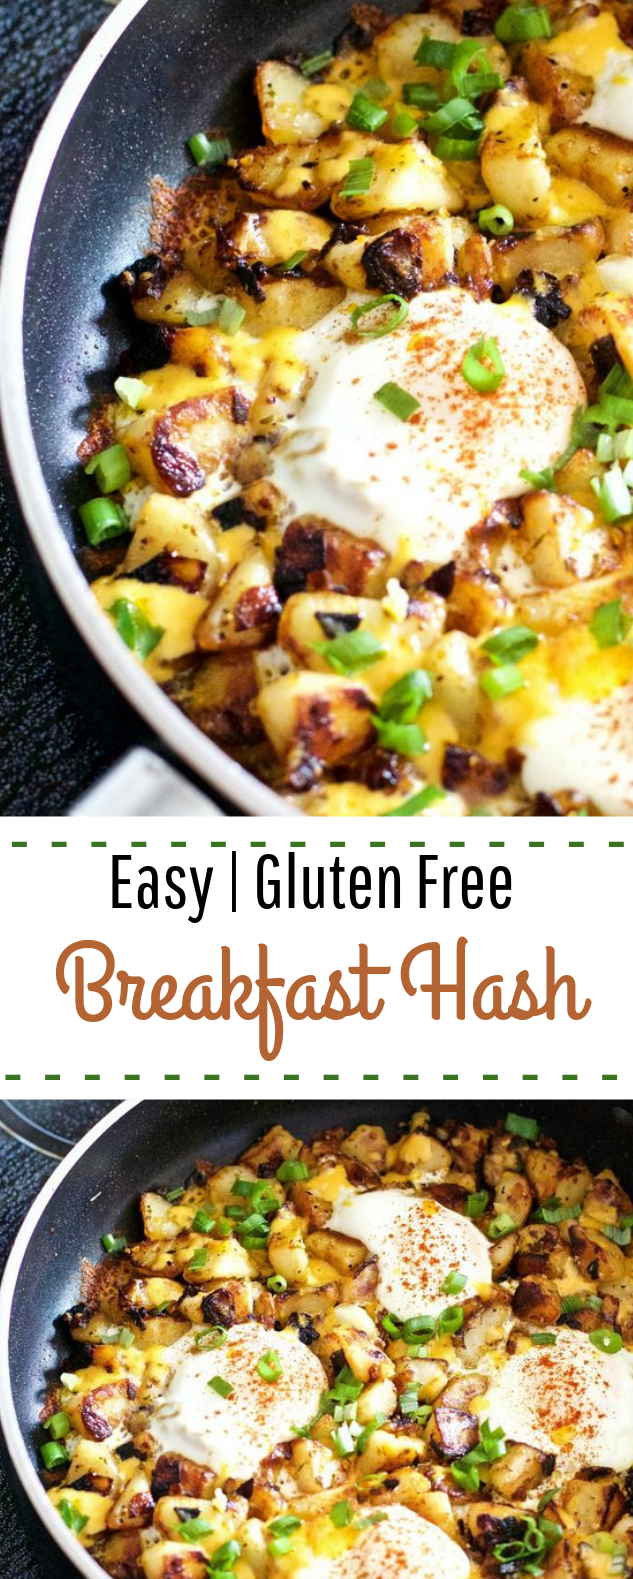 Gluten-Free Breakfast Hash #healthy #glutenfree